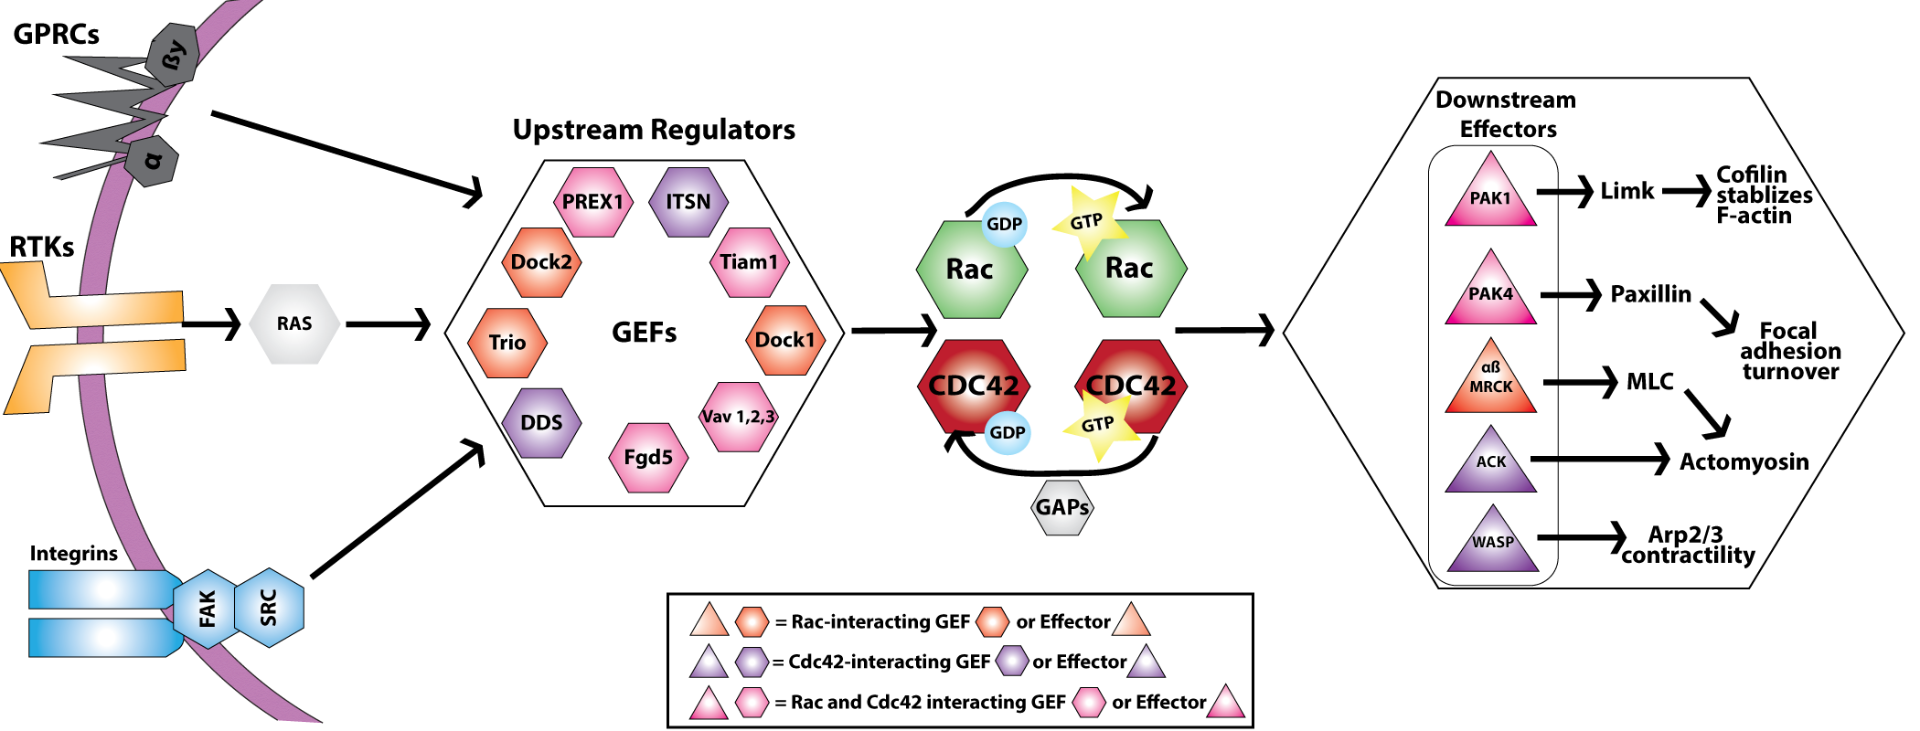 Figure legend: Upstream and downstream pathways converging on the Rac and Cdc42 axis (adapted from refs. 14 & 17).